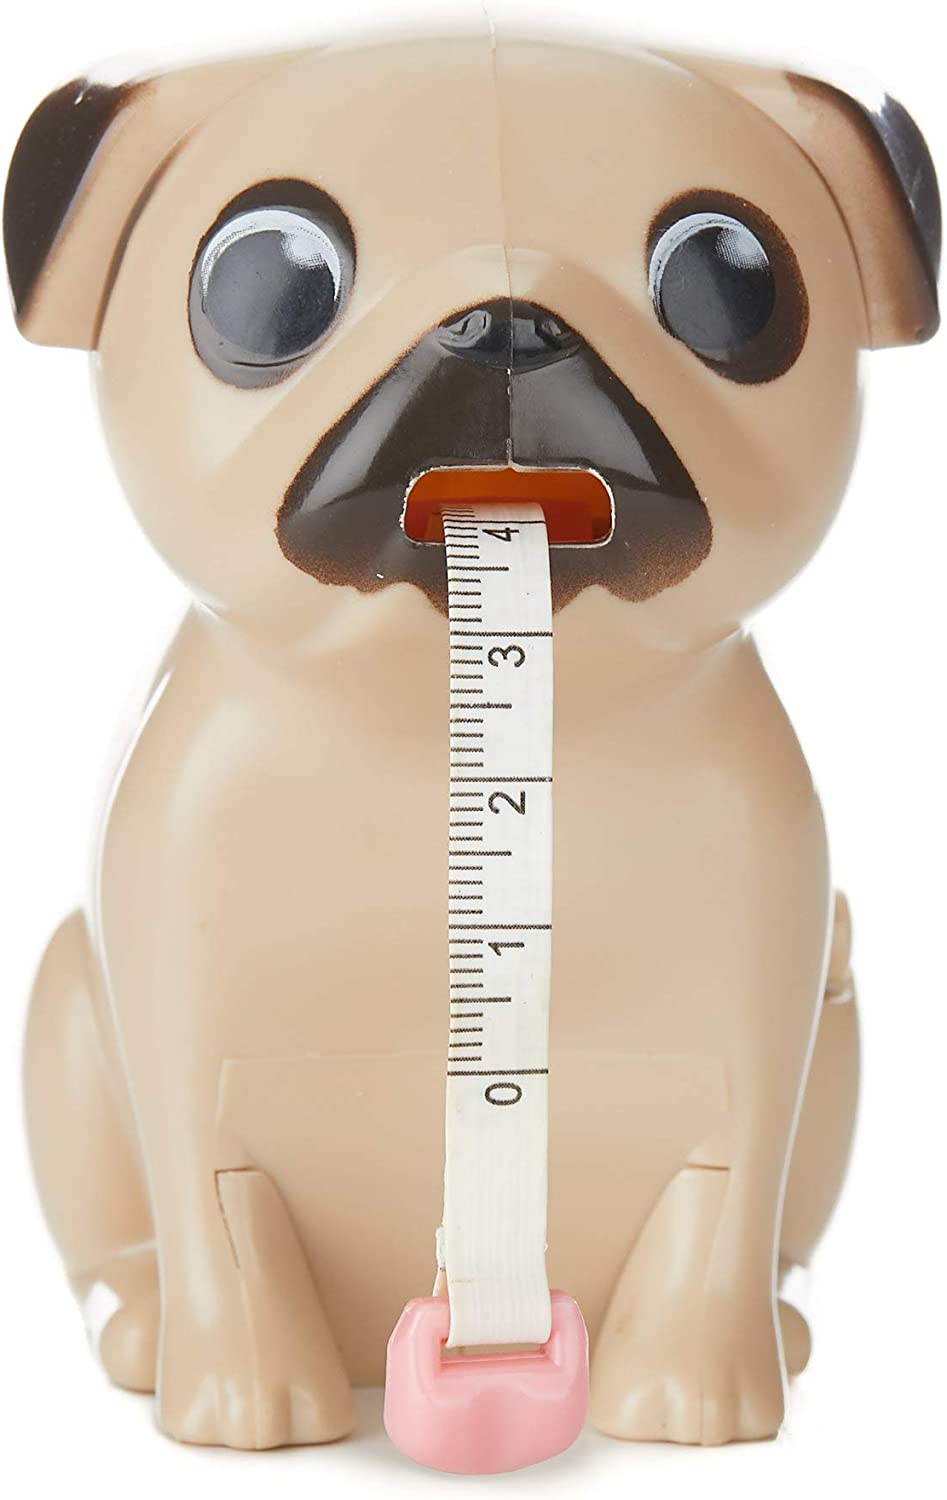 Paladone Pug Tape Measure - Includes: Measurements in Both inches and Centimeters. Approx. 40 Inches in Length.